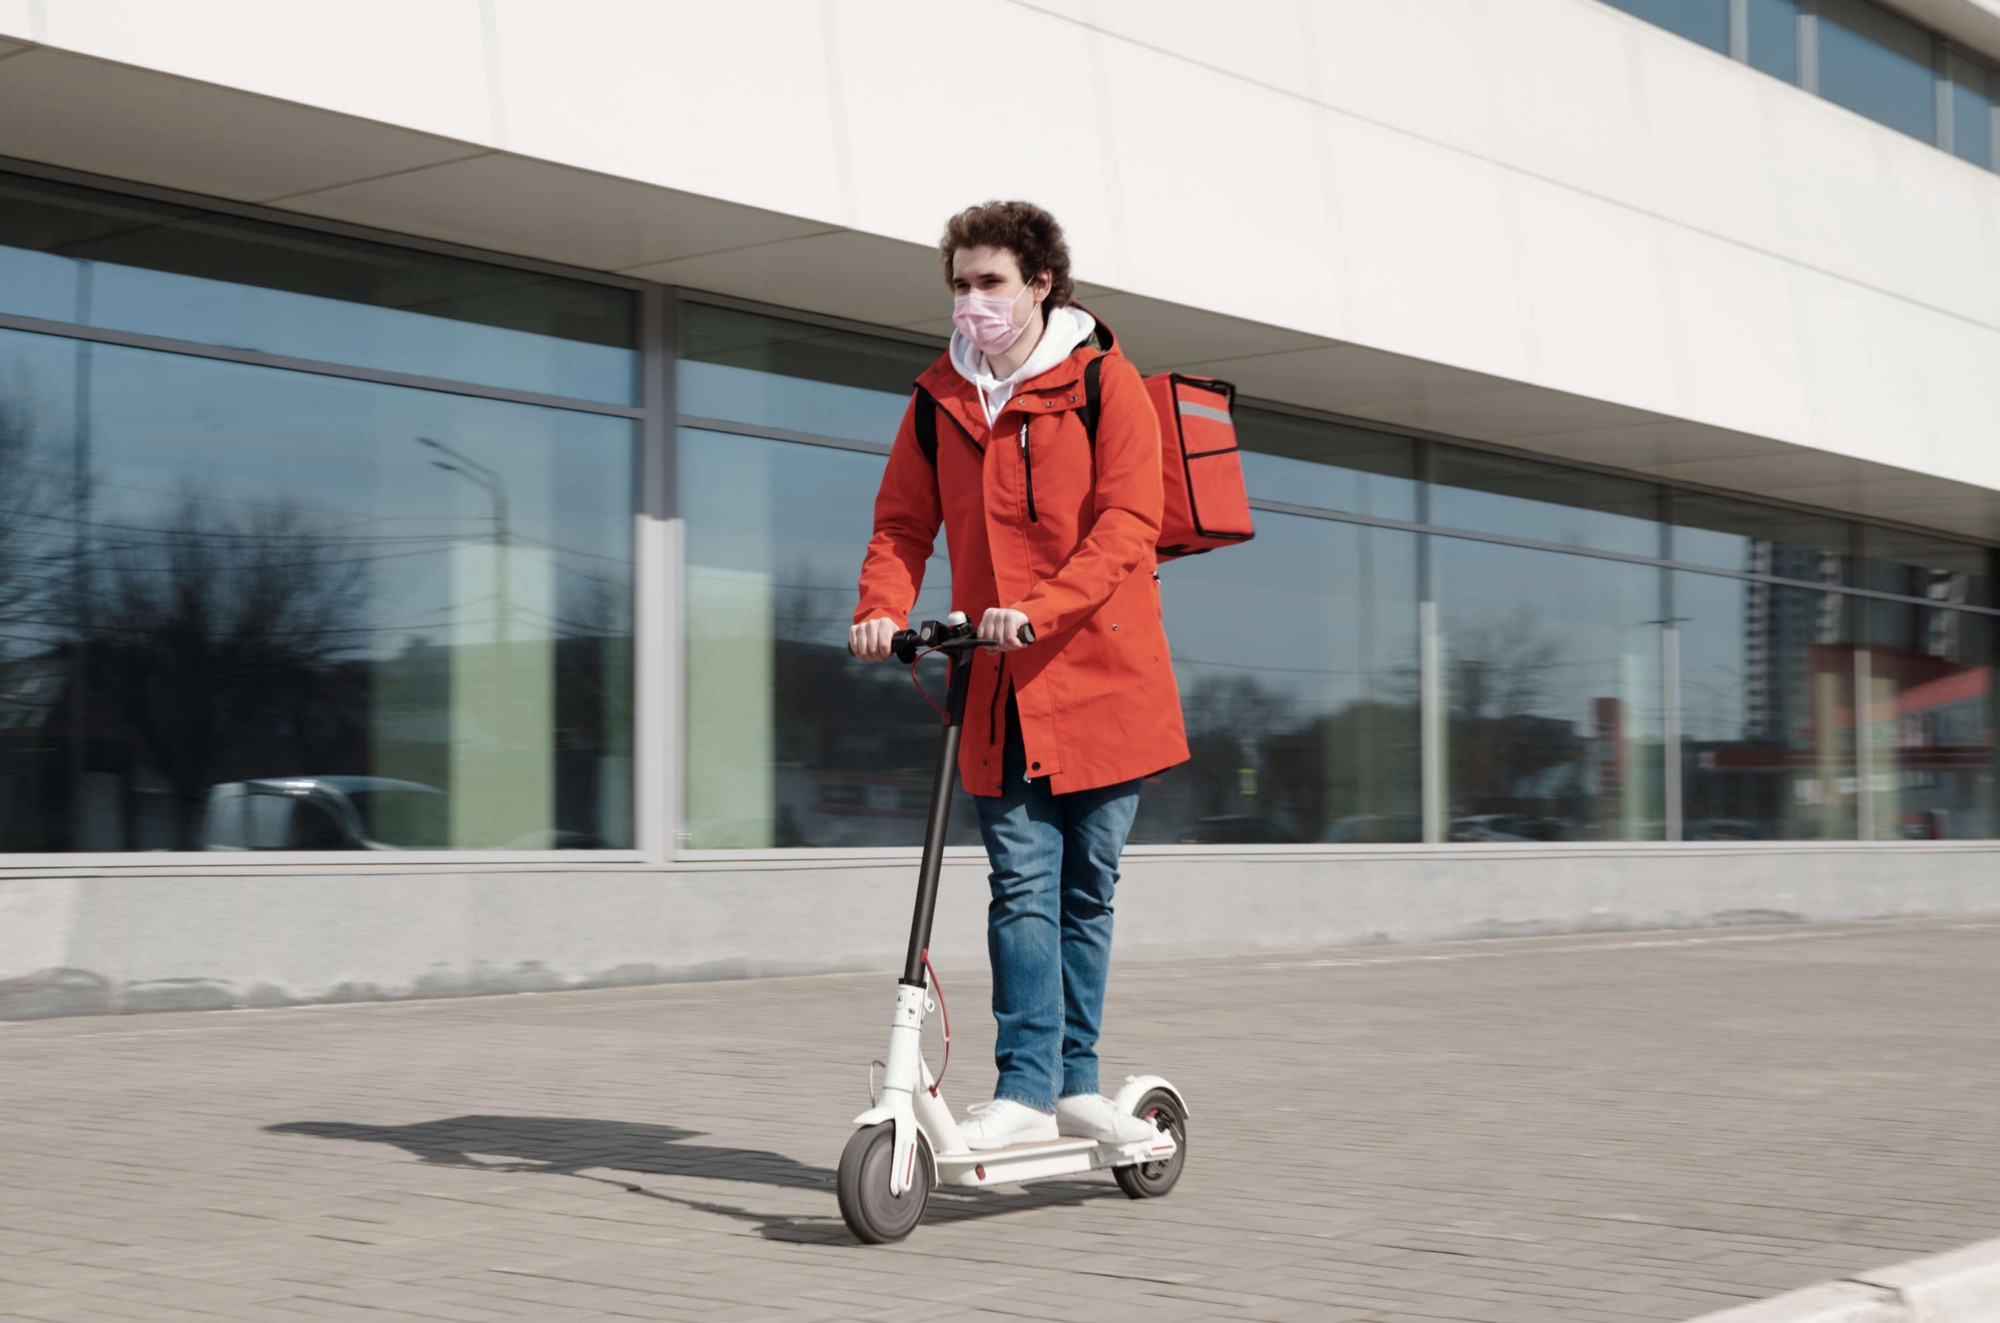 A masked delivery worker rides an electric scooter past a building.